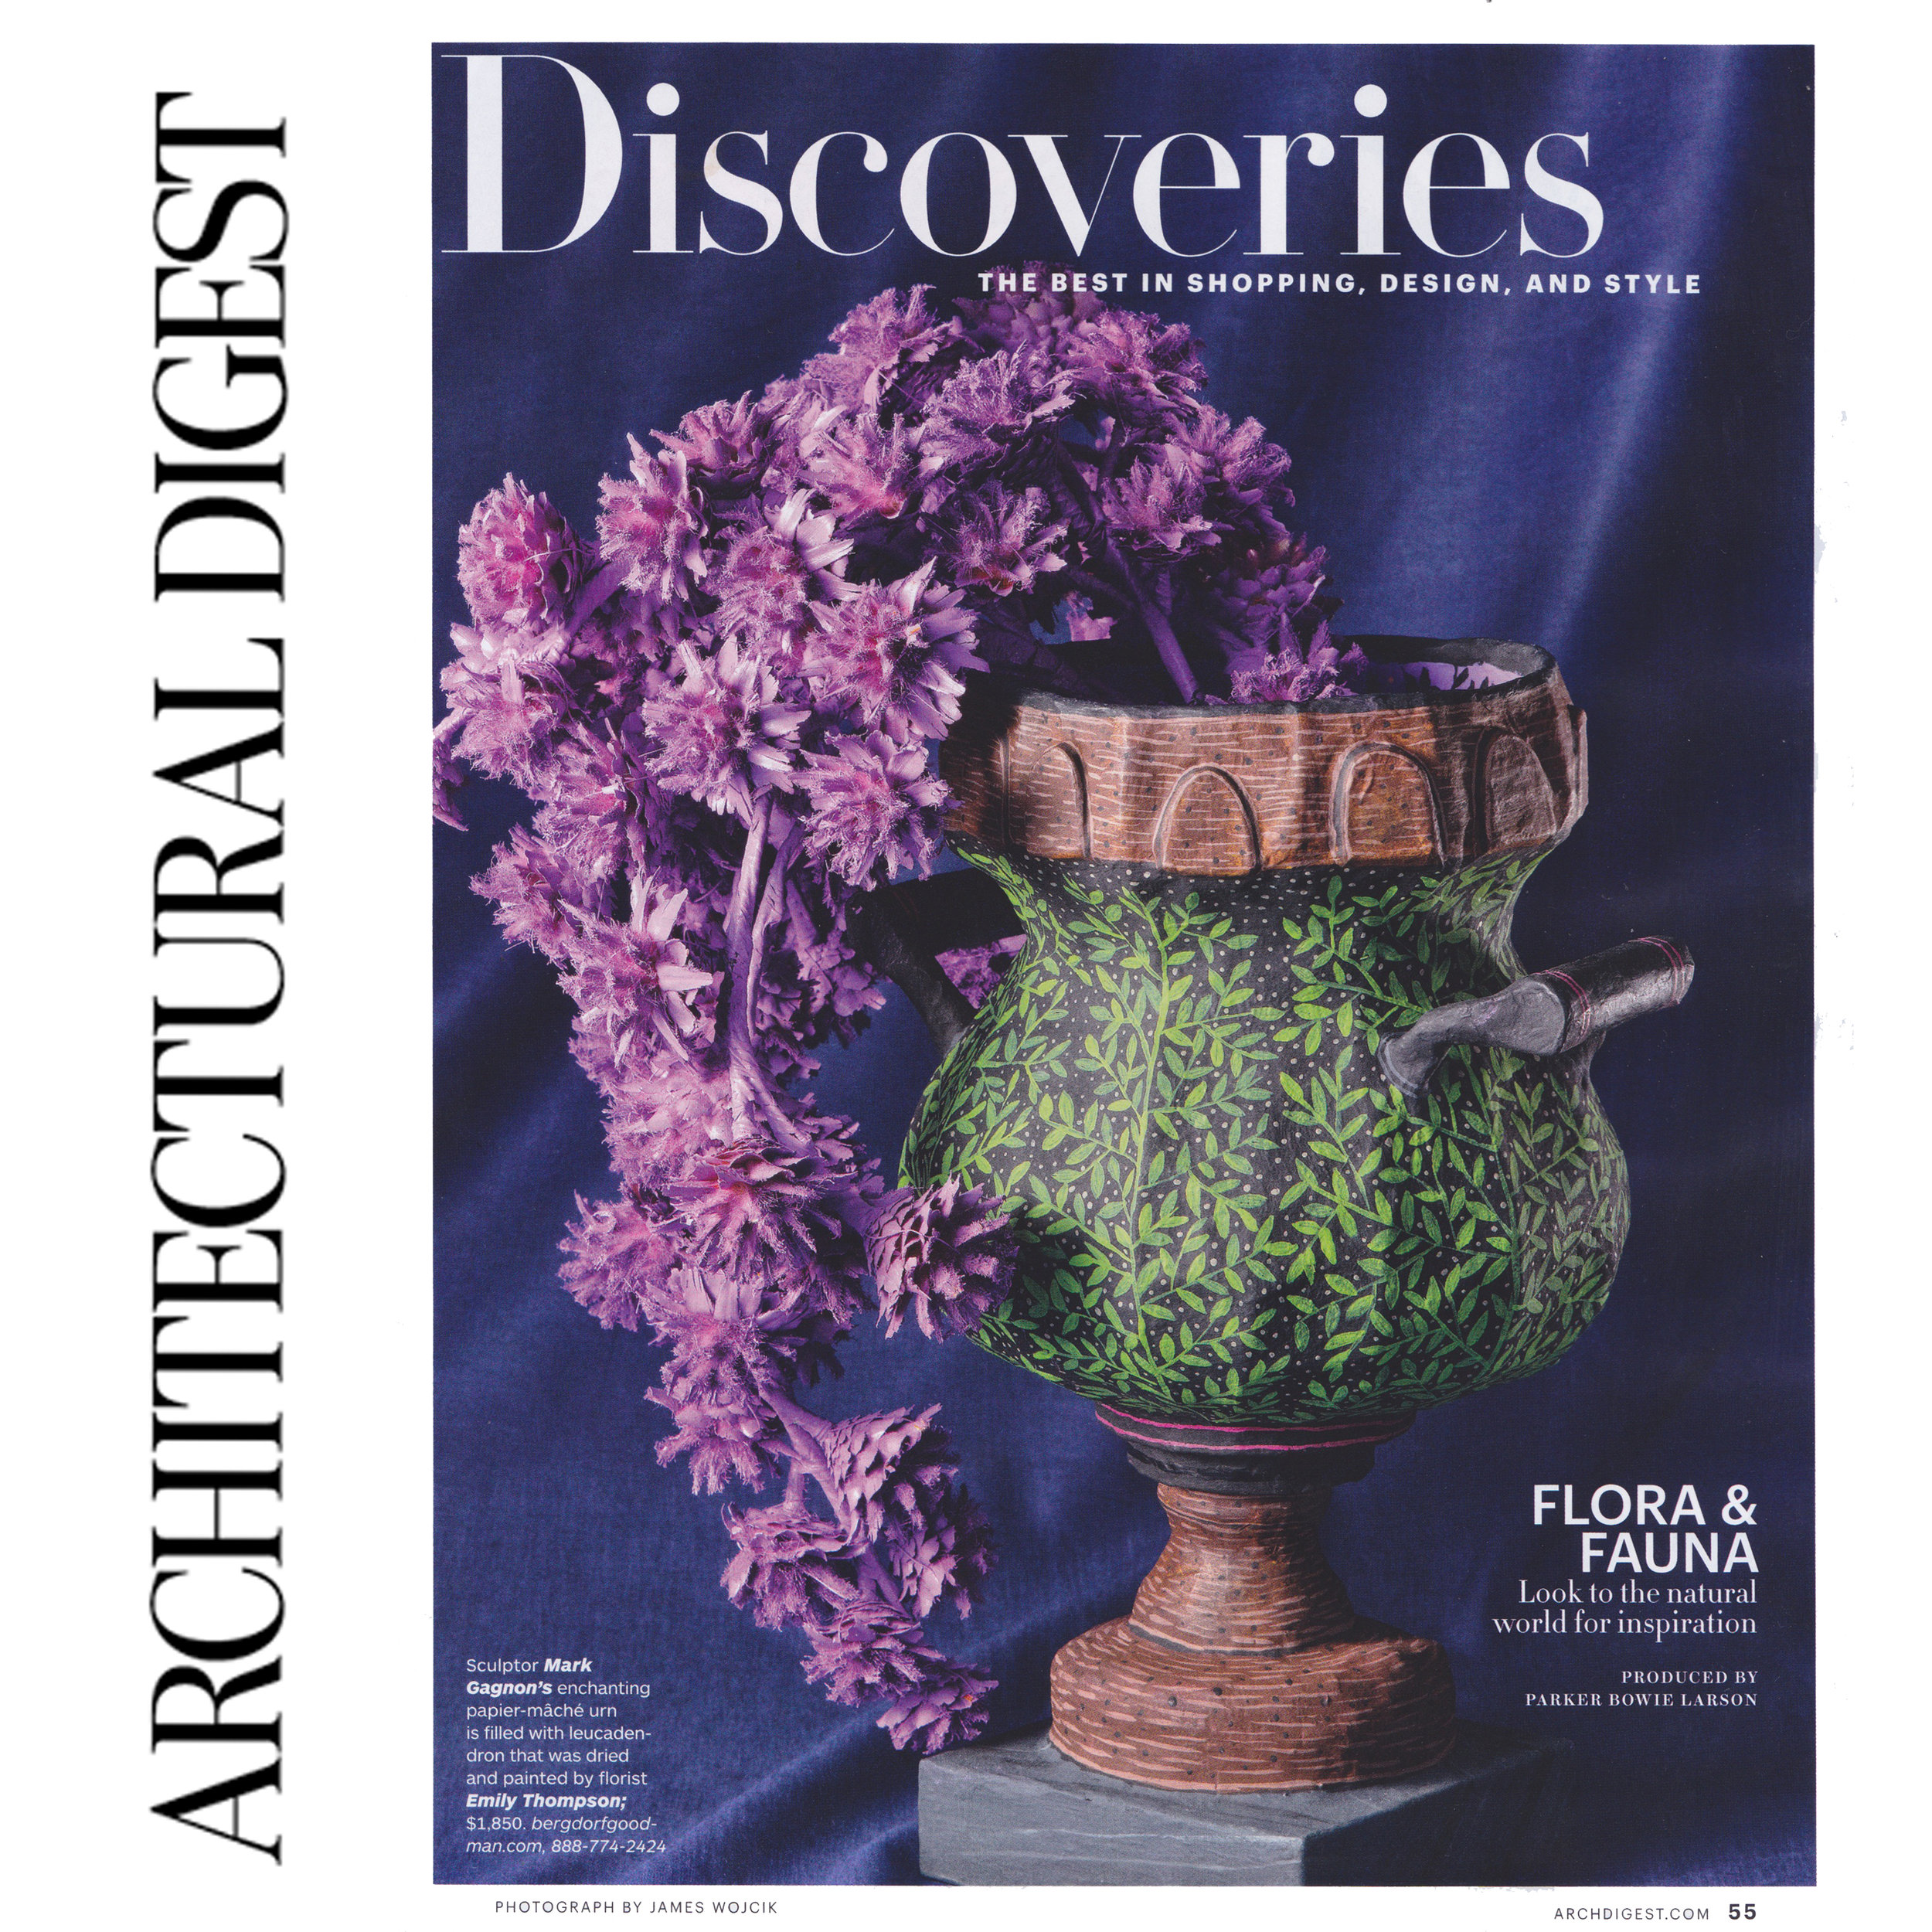 Featured in Architectural Digest November issue 2016